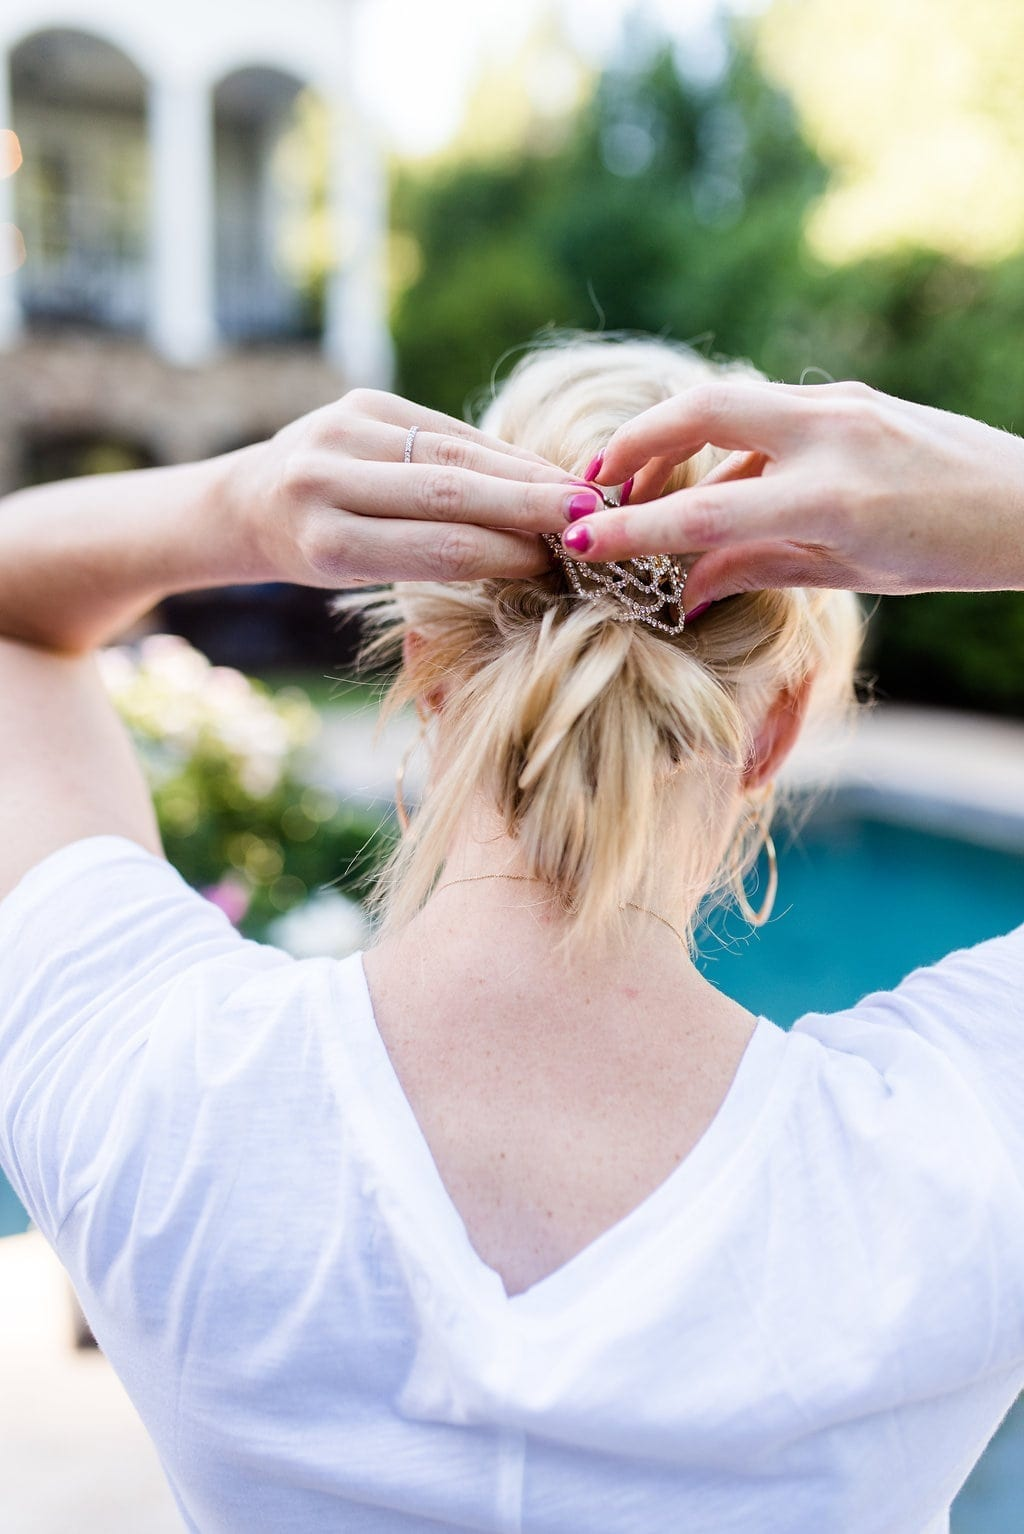 How to style big braids to the side.